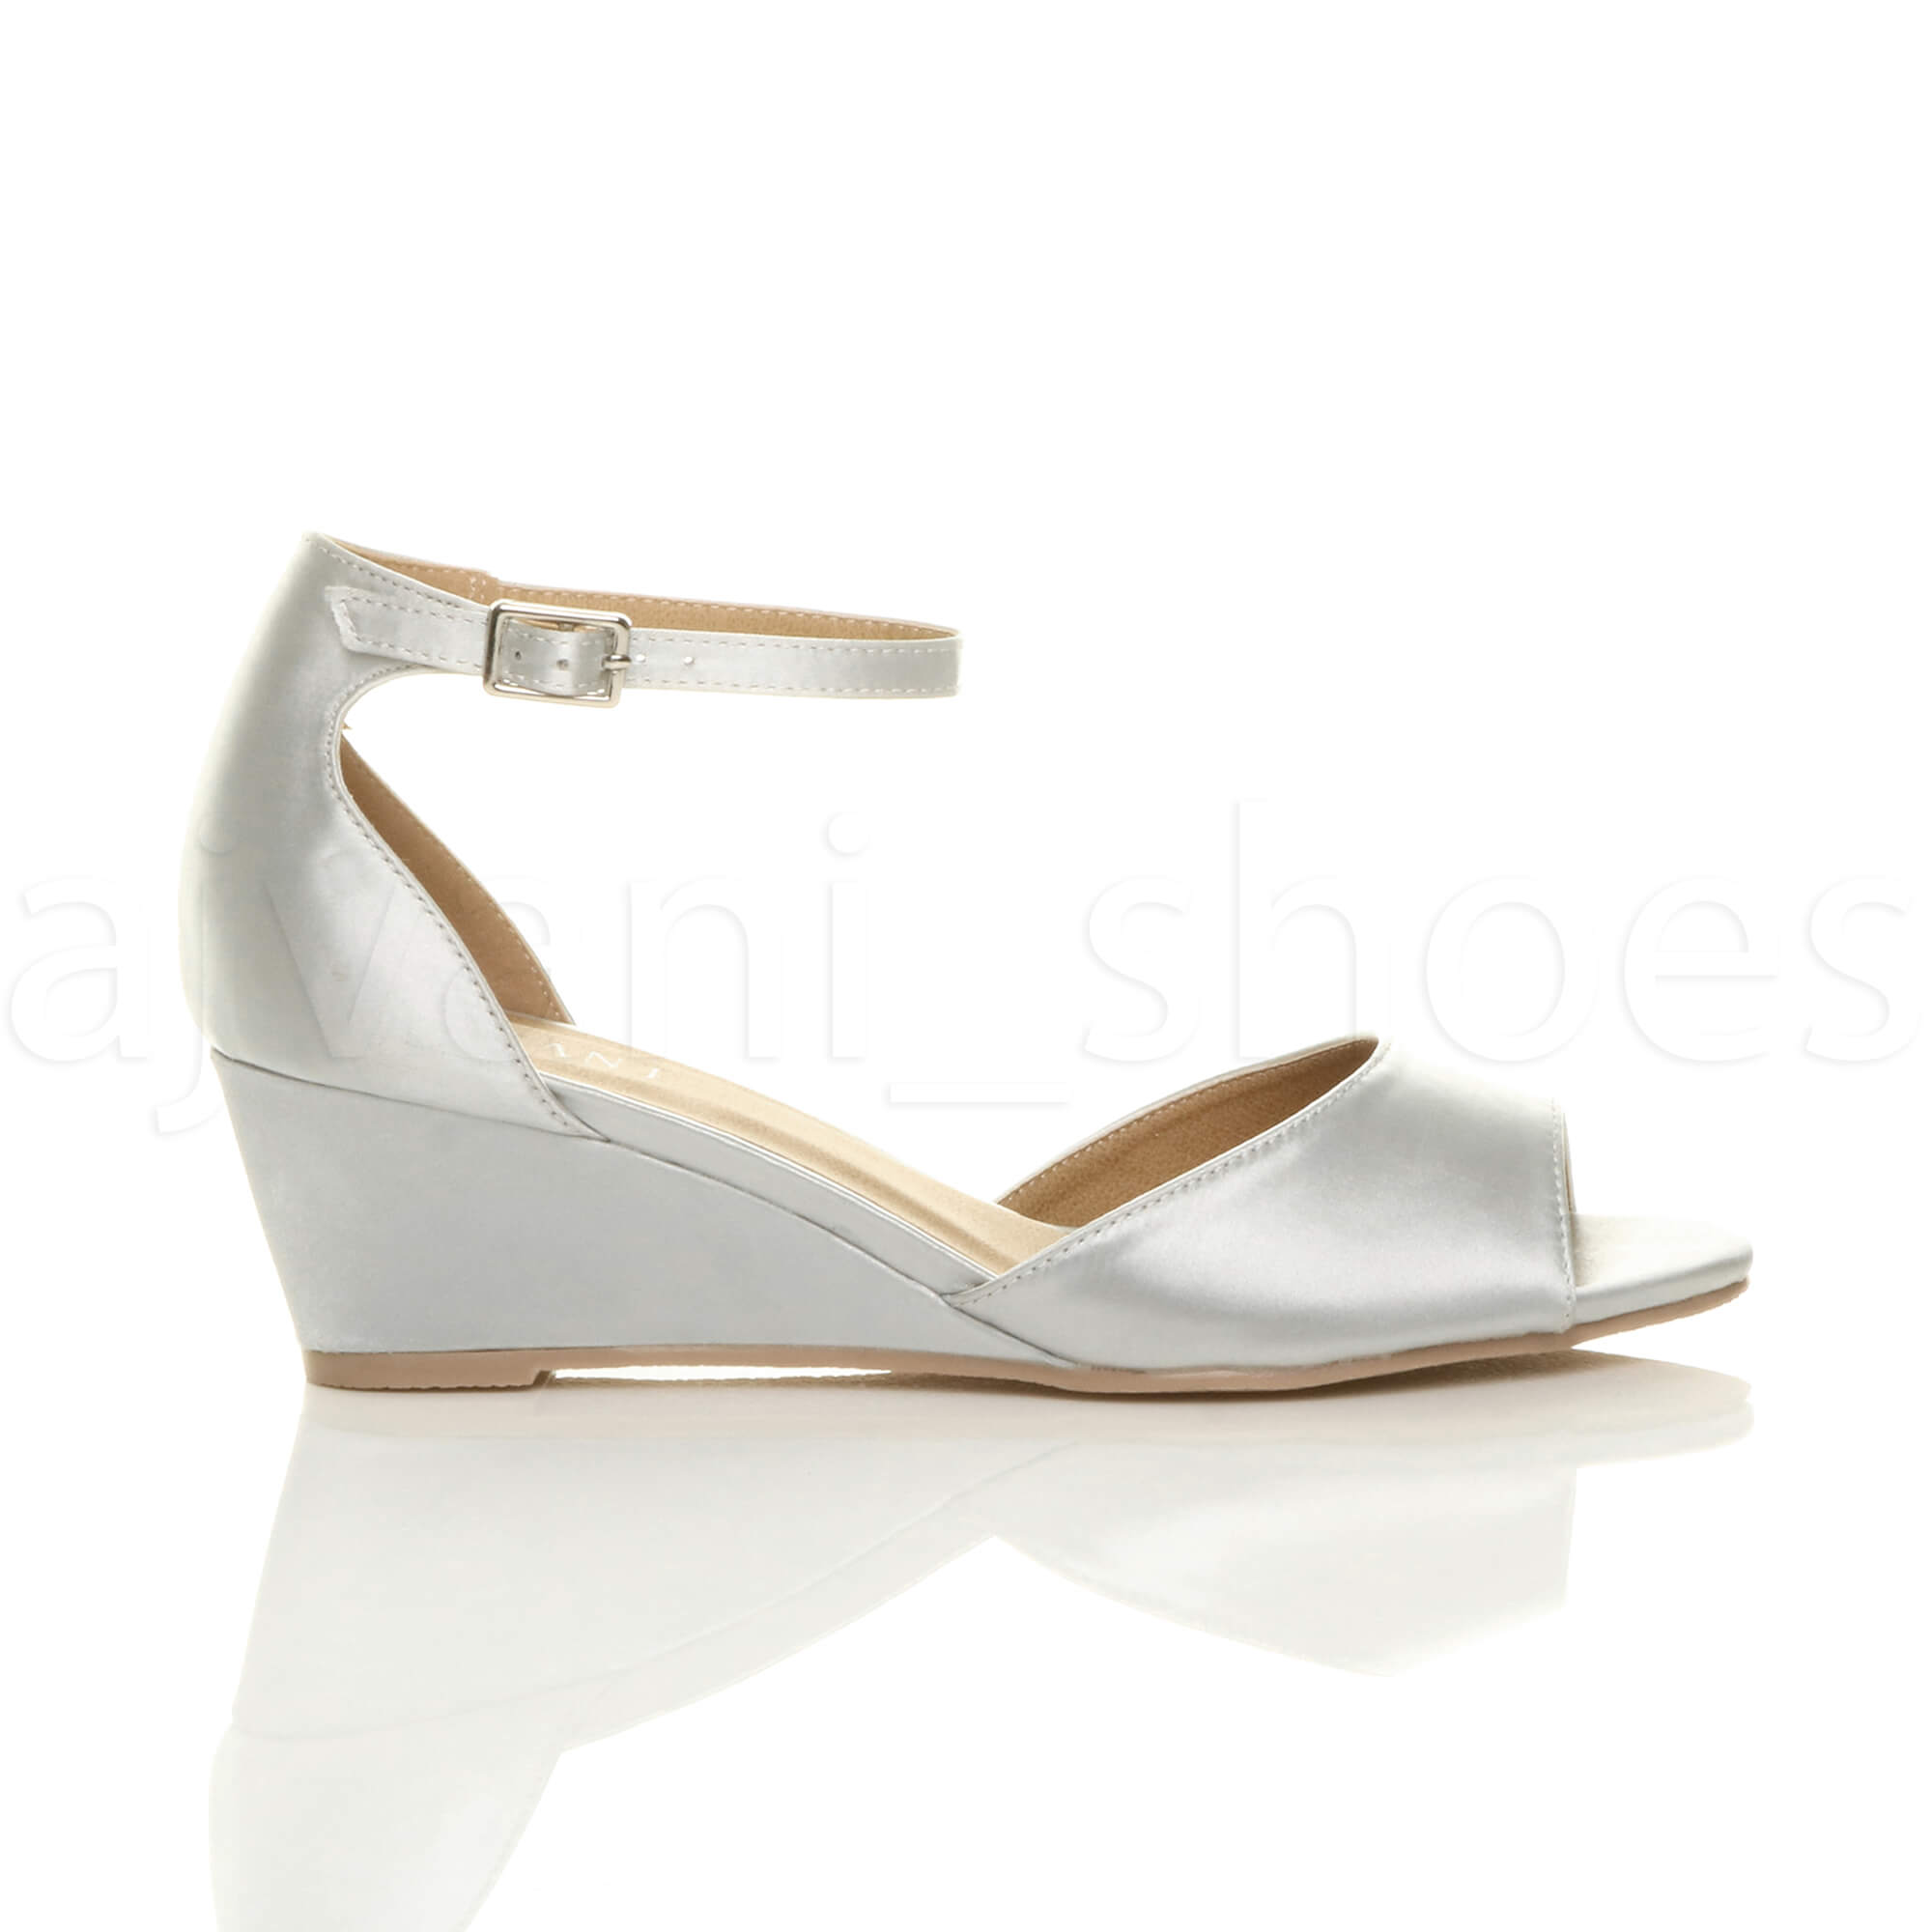 WOMENS-LADIES-LOW-MID-WEDGE-HEEL-ANKLE-STRAP-SMART-CASUAL-EVENING-SANDALS-SIZE thumbnail 155